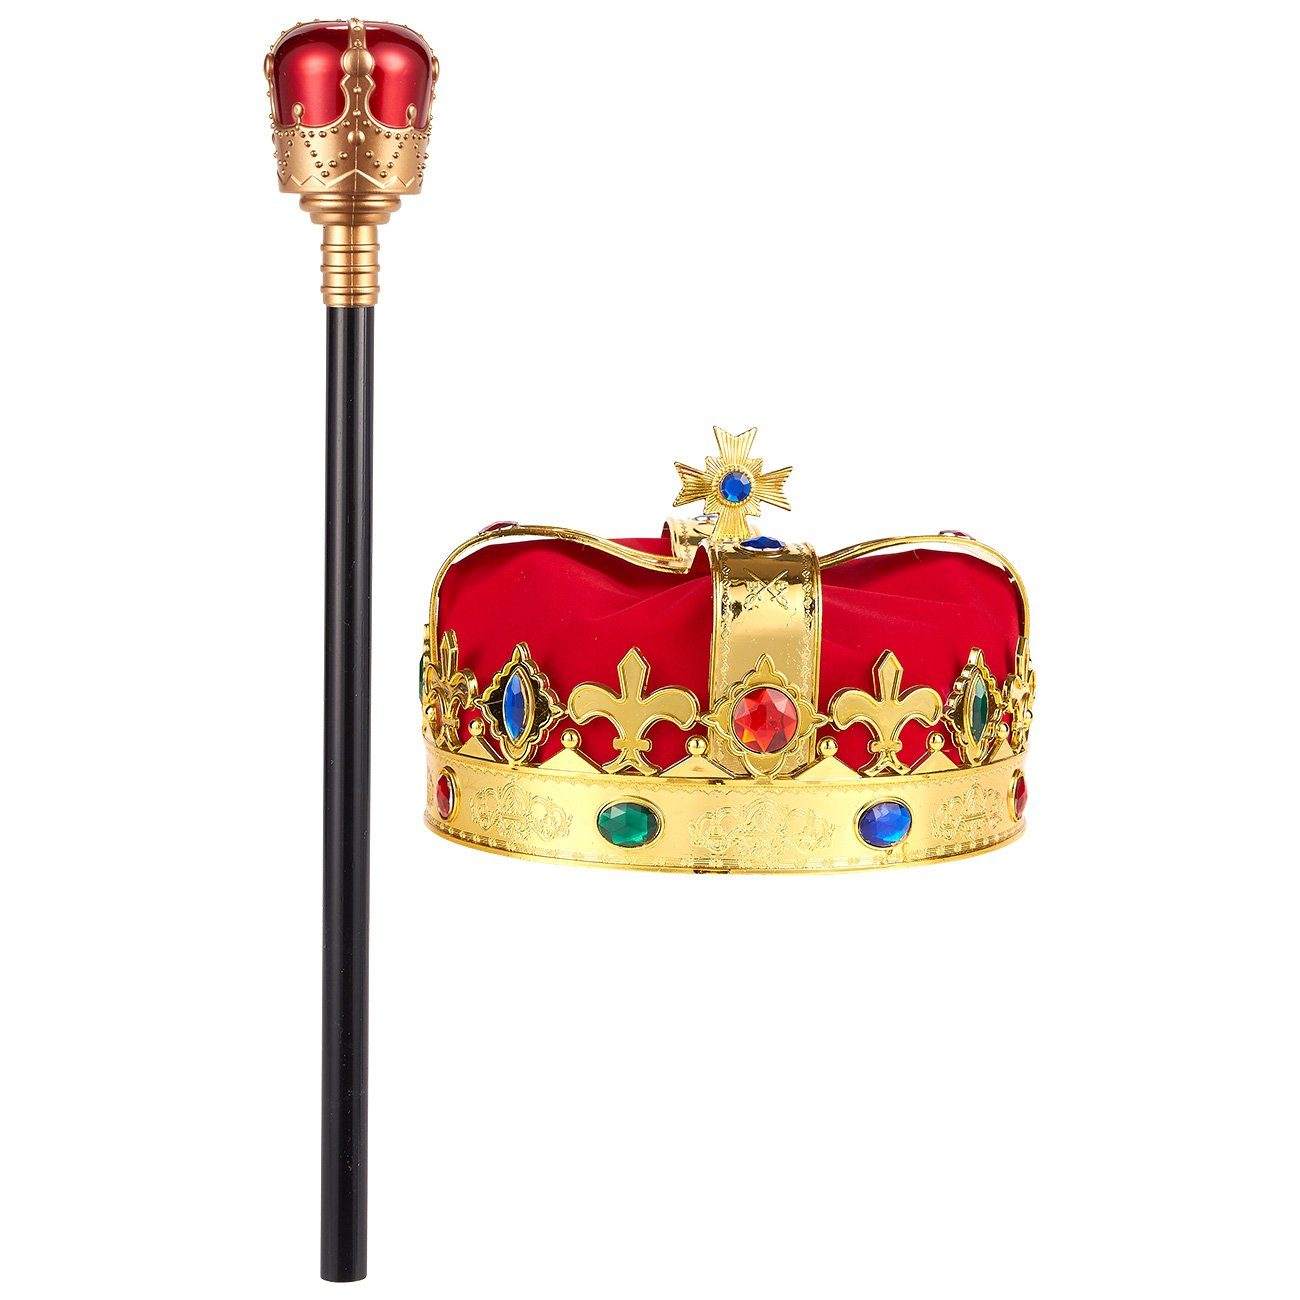 2-Pack Kids King Medieval Crown Imitation Royal Scepter - Prince King Jeweled Crown Boys, King Party, Party Decorations, Gold Red